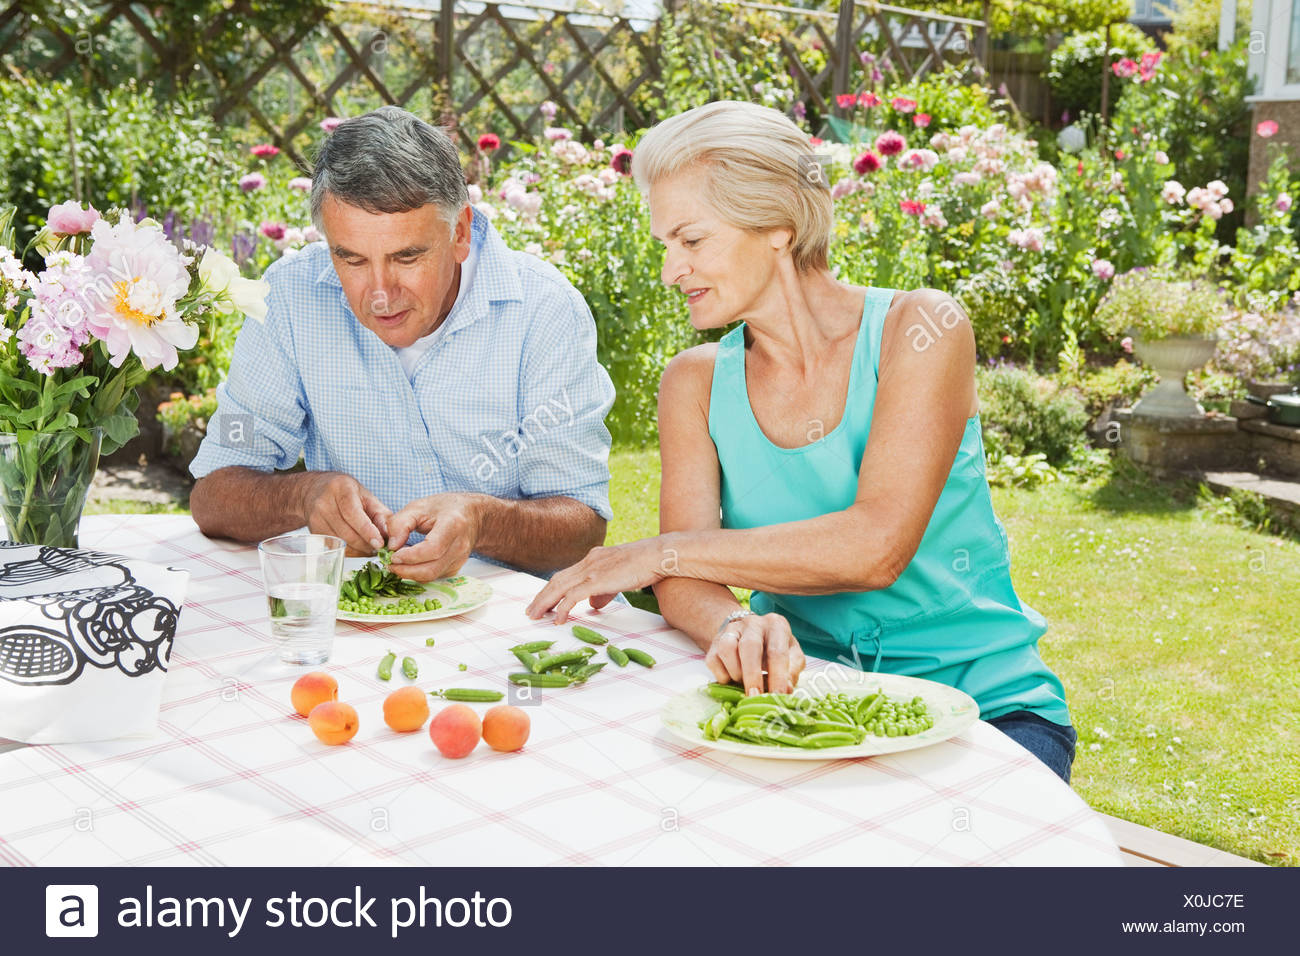 mature woman teaches partner to peel pod - Stock Image